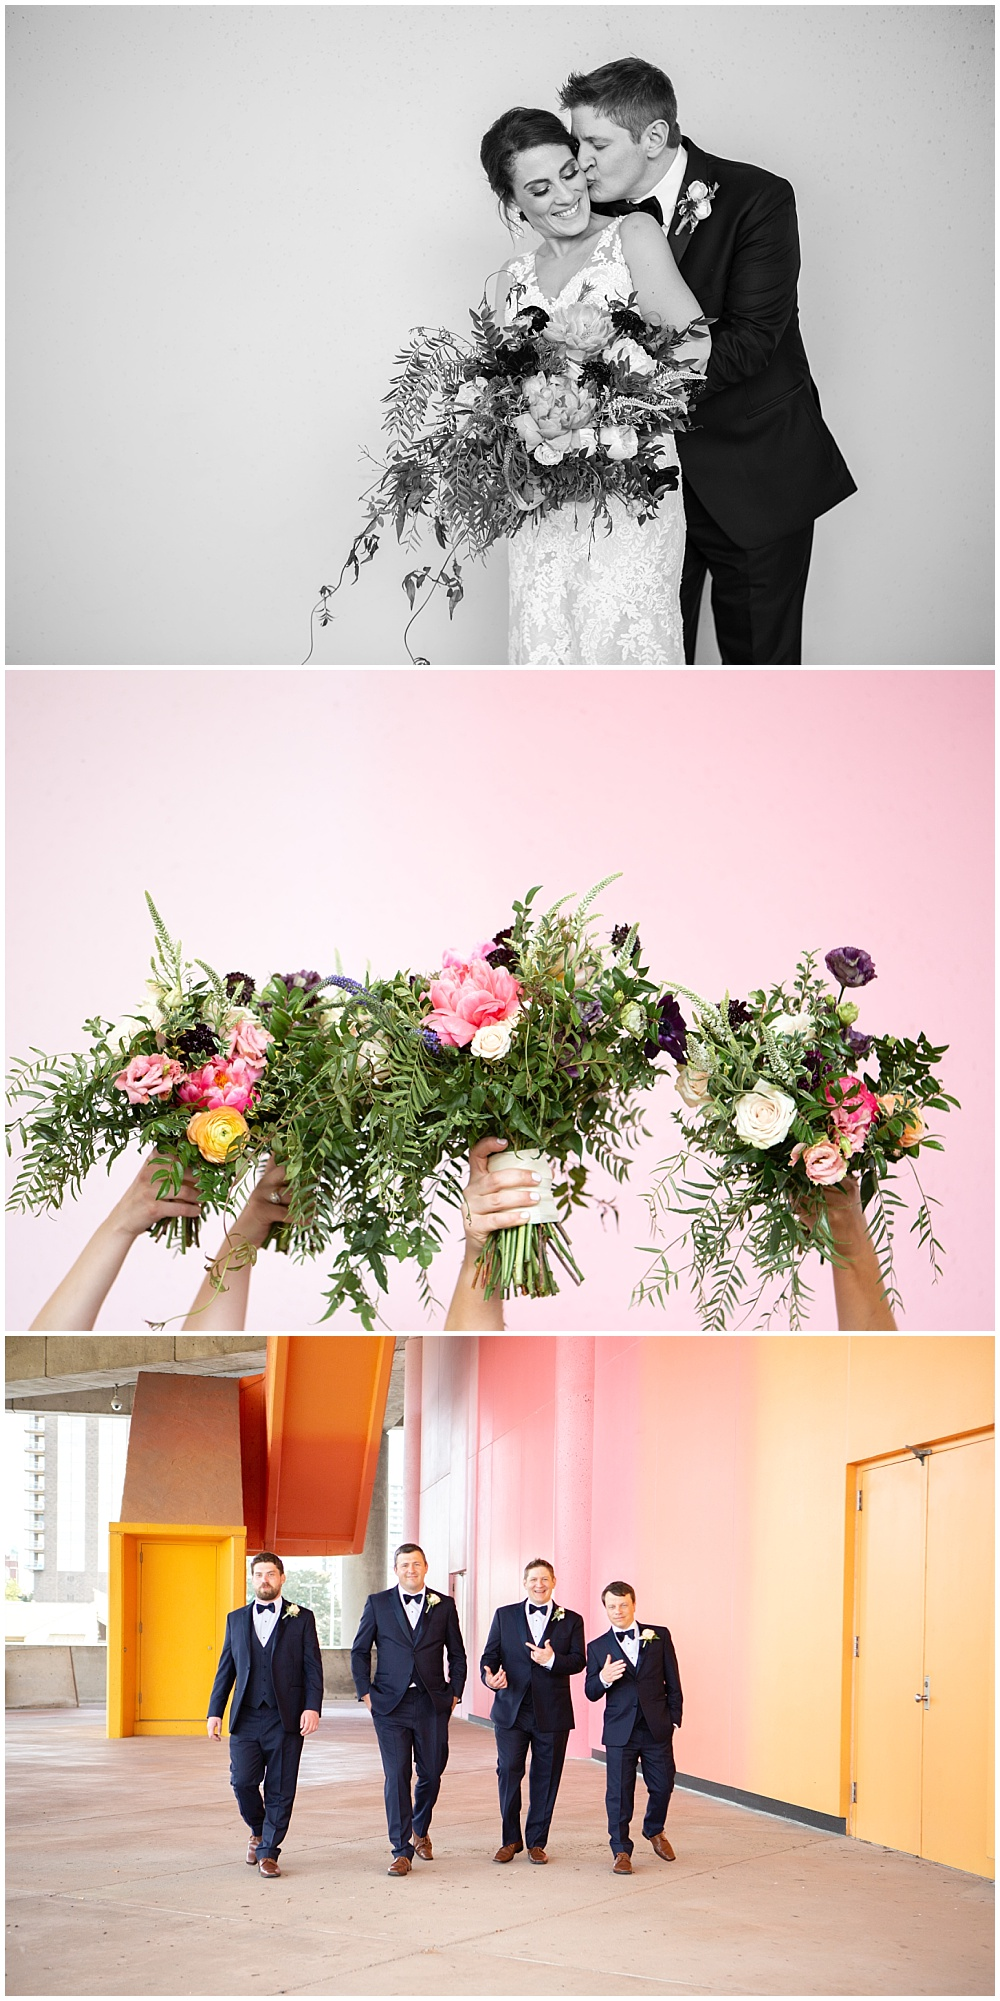 bold wedding flowers, bride and groom portraits, groomsmen, colorful wedding backdrop, Colorful, modern wedding at The Alexander Hotel | Conforti Photography and Jessica Dum Wedding Coordination